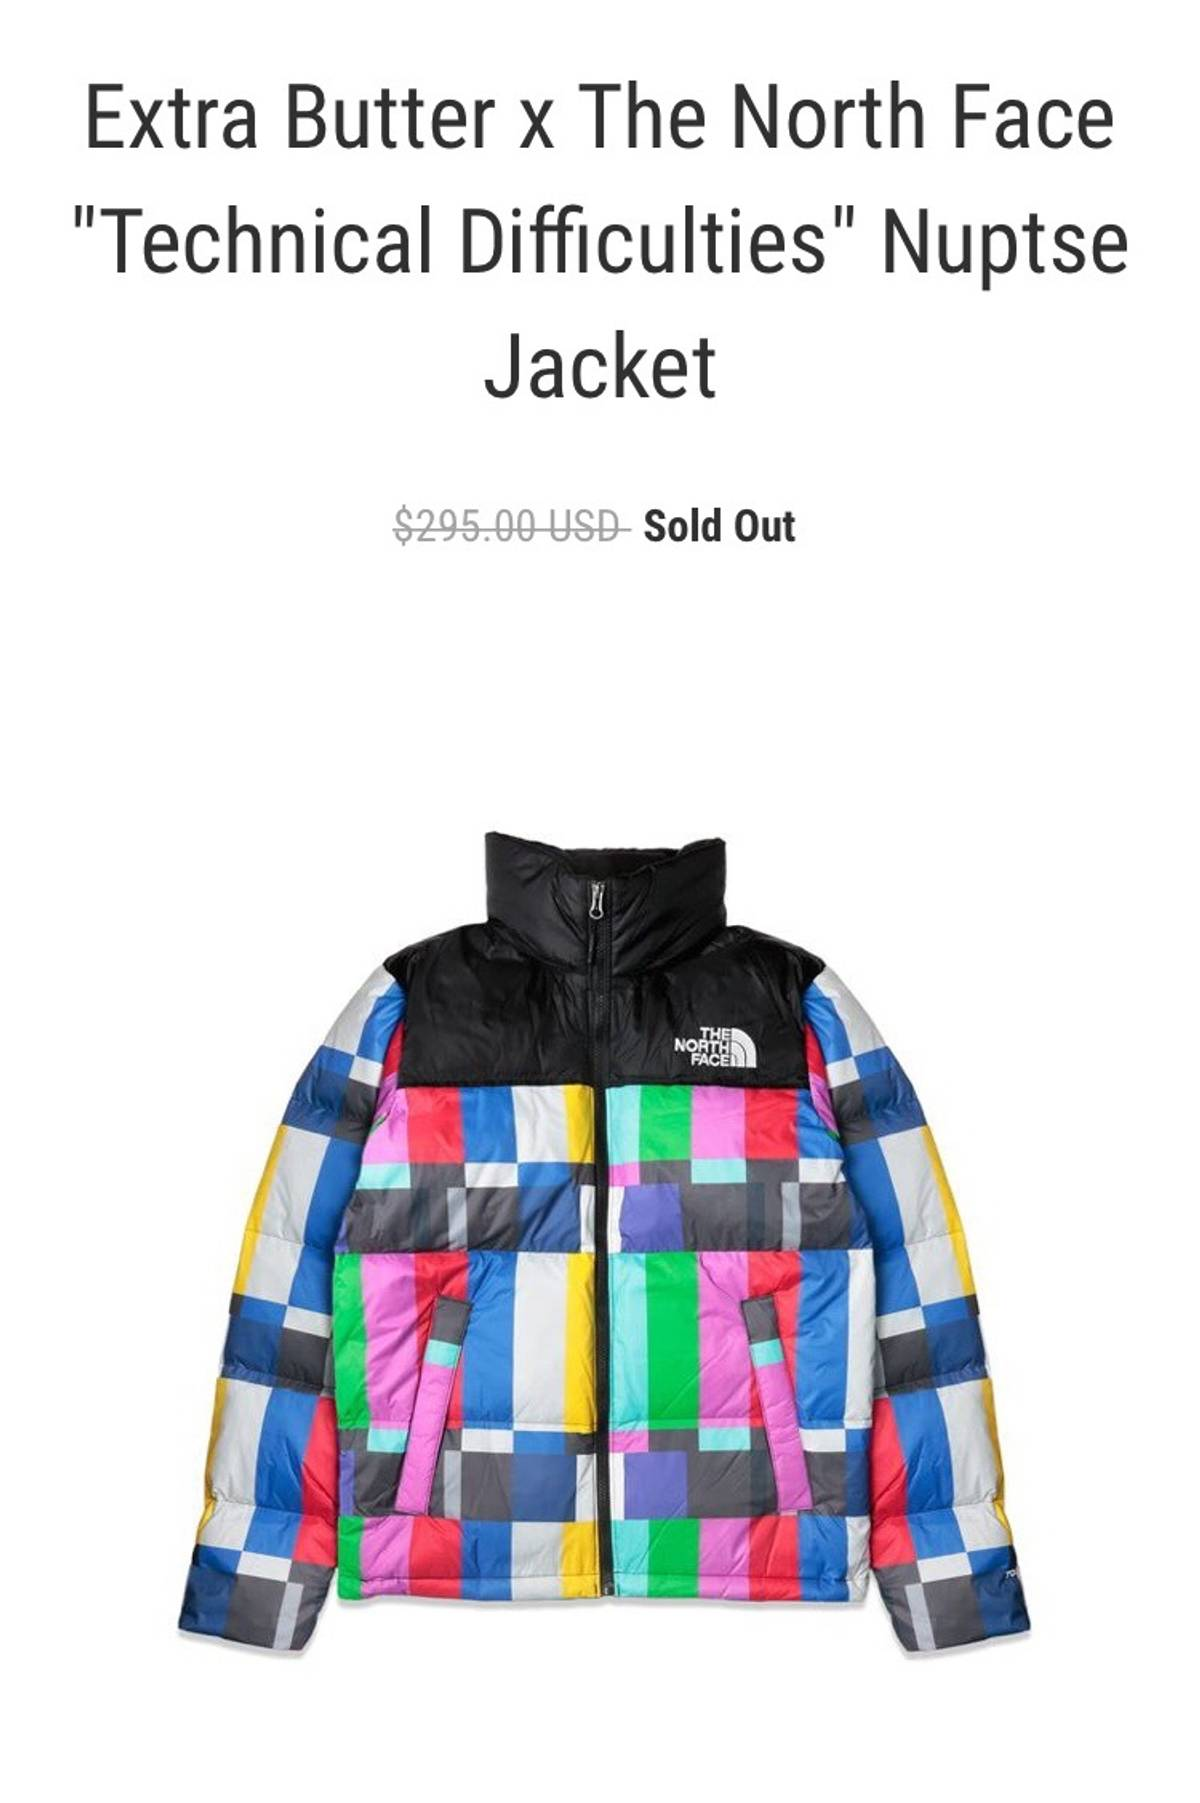 """The North Face North Face x Extra Butter """"Technical Difficulties"""" Nuptse  Jacket Size xs - Parkas for Sale - Grailed 4acb5c657"""